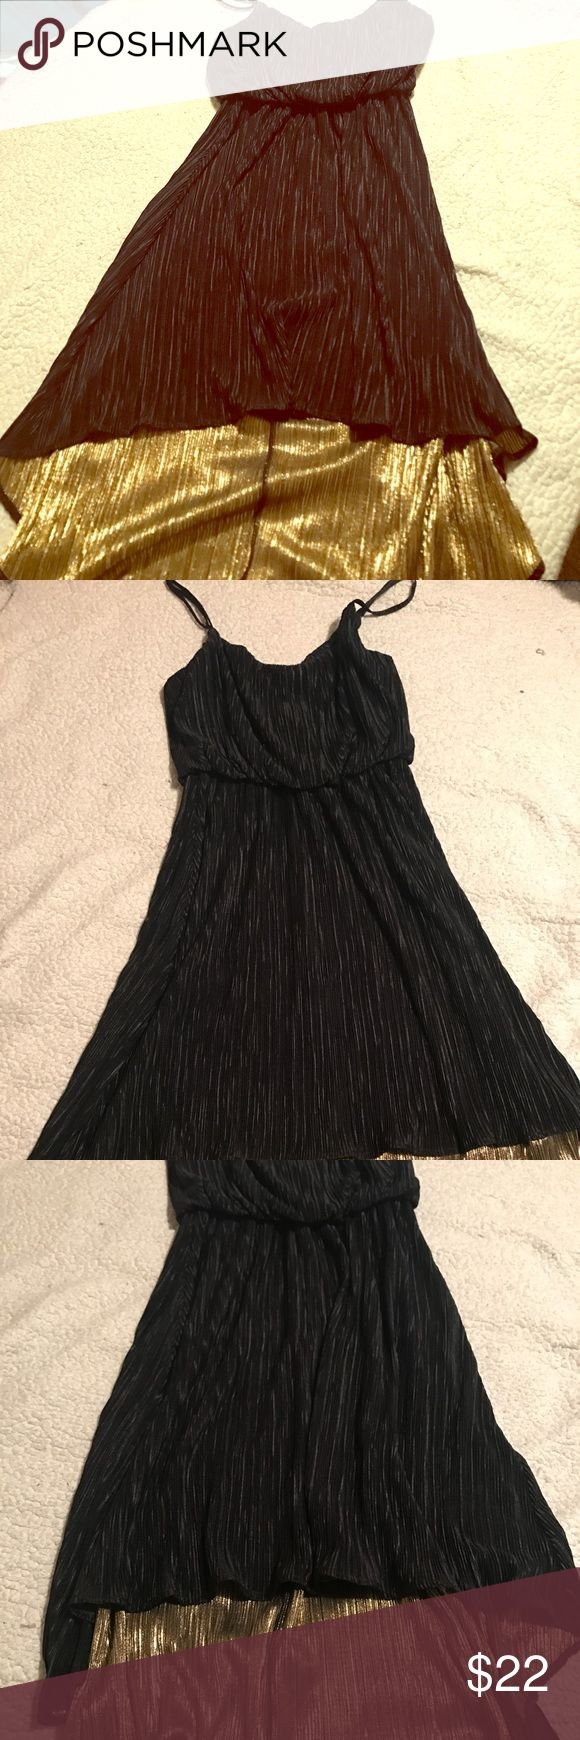 Black and Gold 70s-esque Party Dress Channel disco vibes with this super fun LBD with a flash of fun. Ruched, almost pleated fabric and a High-low hem shows off the for gold lining. Spaghetti straps and forgiving silhouette! Never worn. Dresses High Low